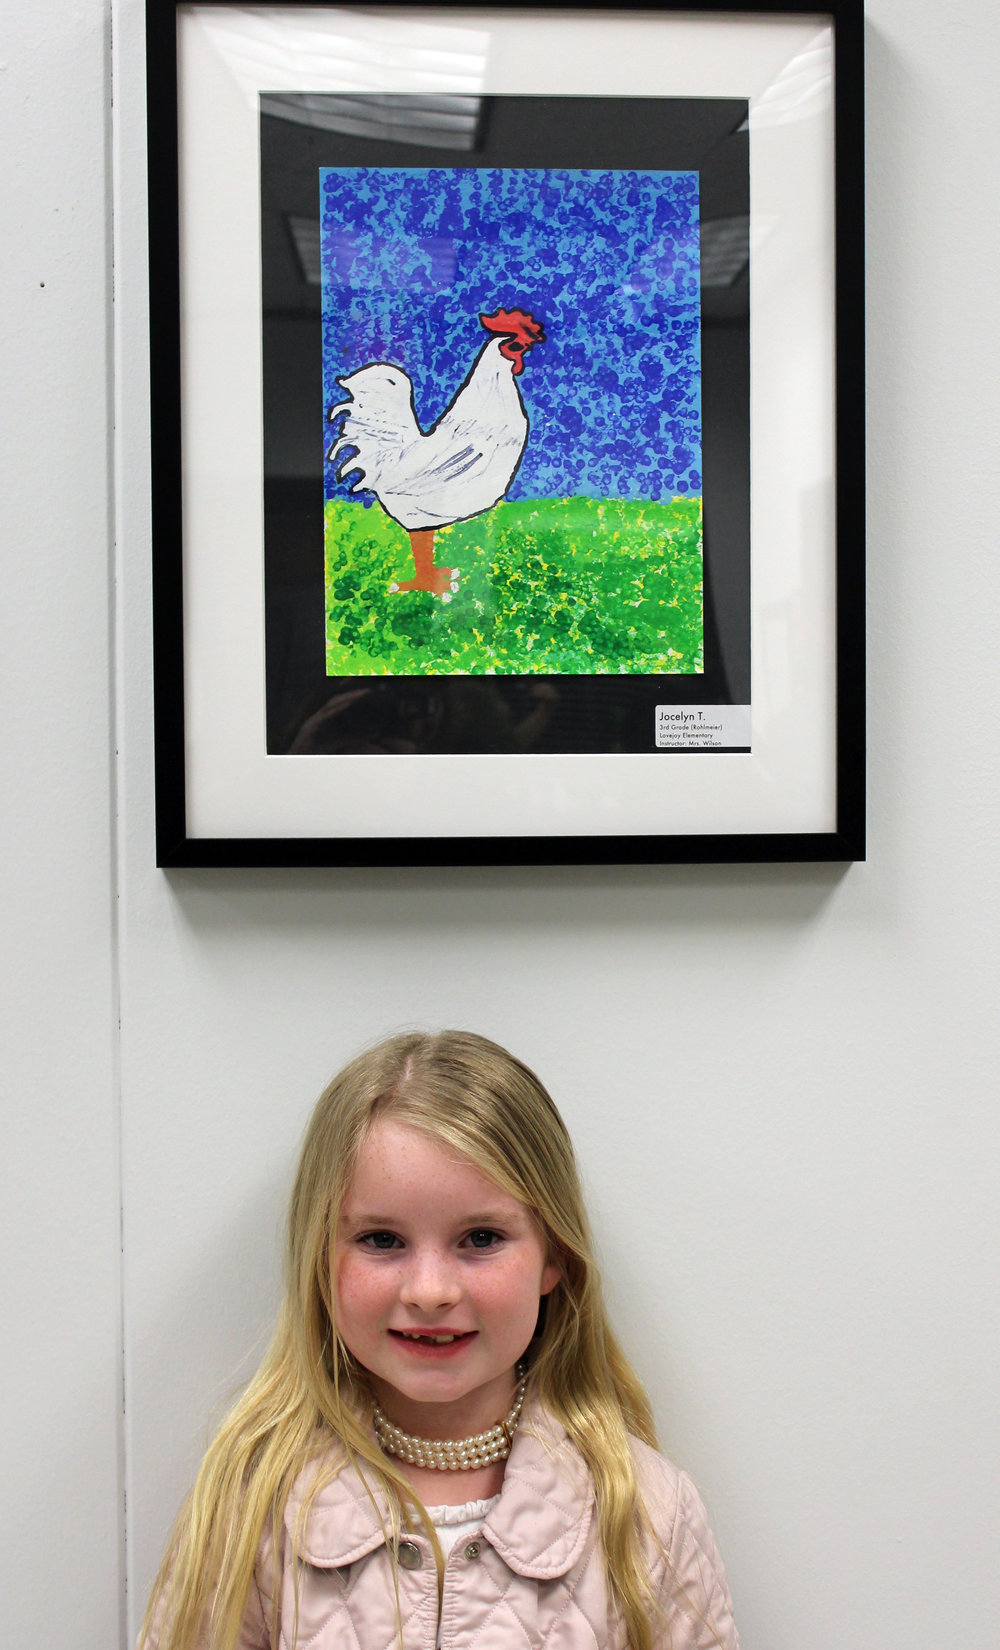 Lovejoy Elementary student, Jocelyn Tribuna, next to her artwork which she created using pointillism technique.